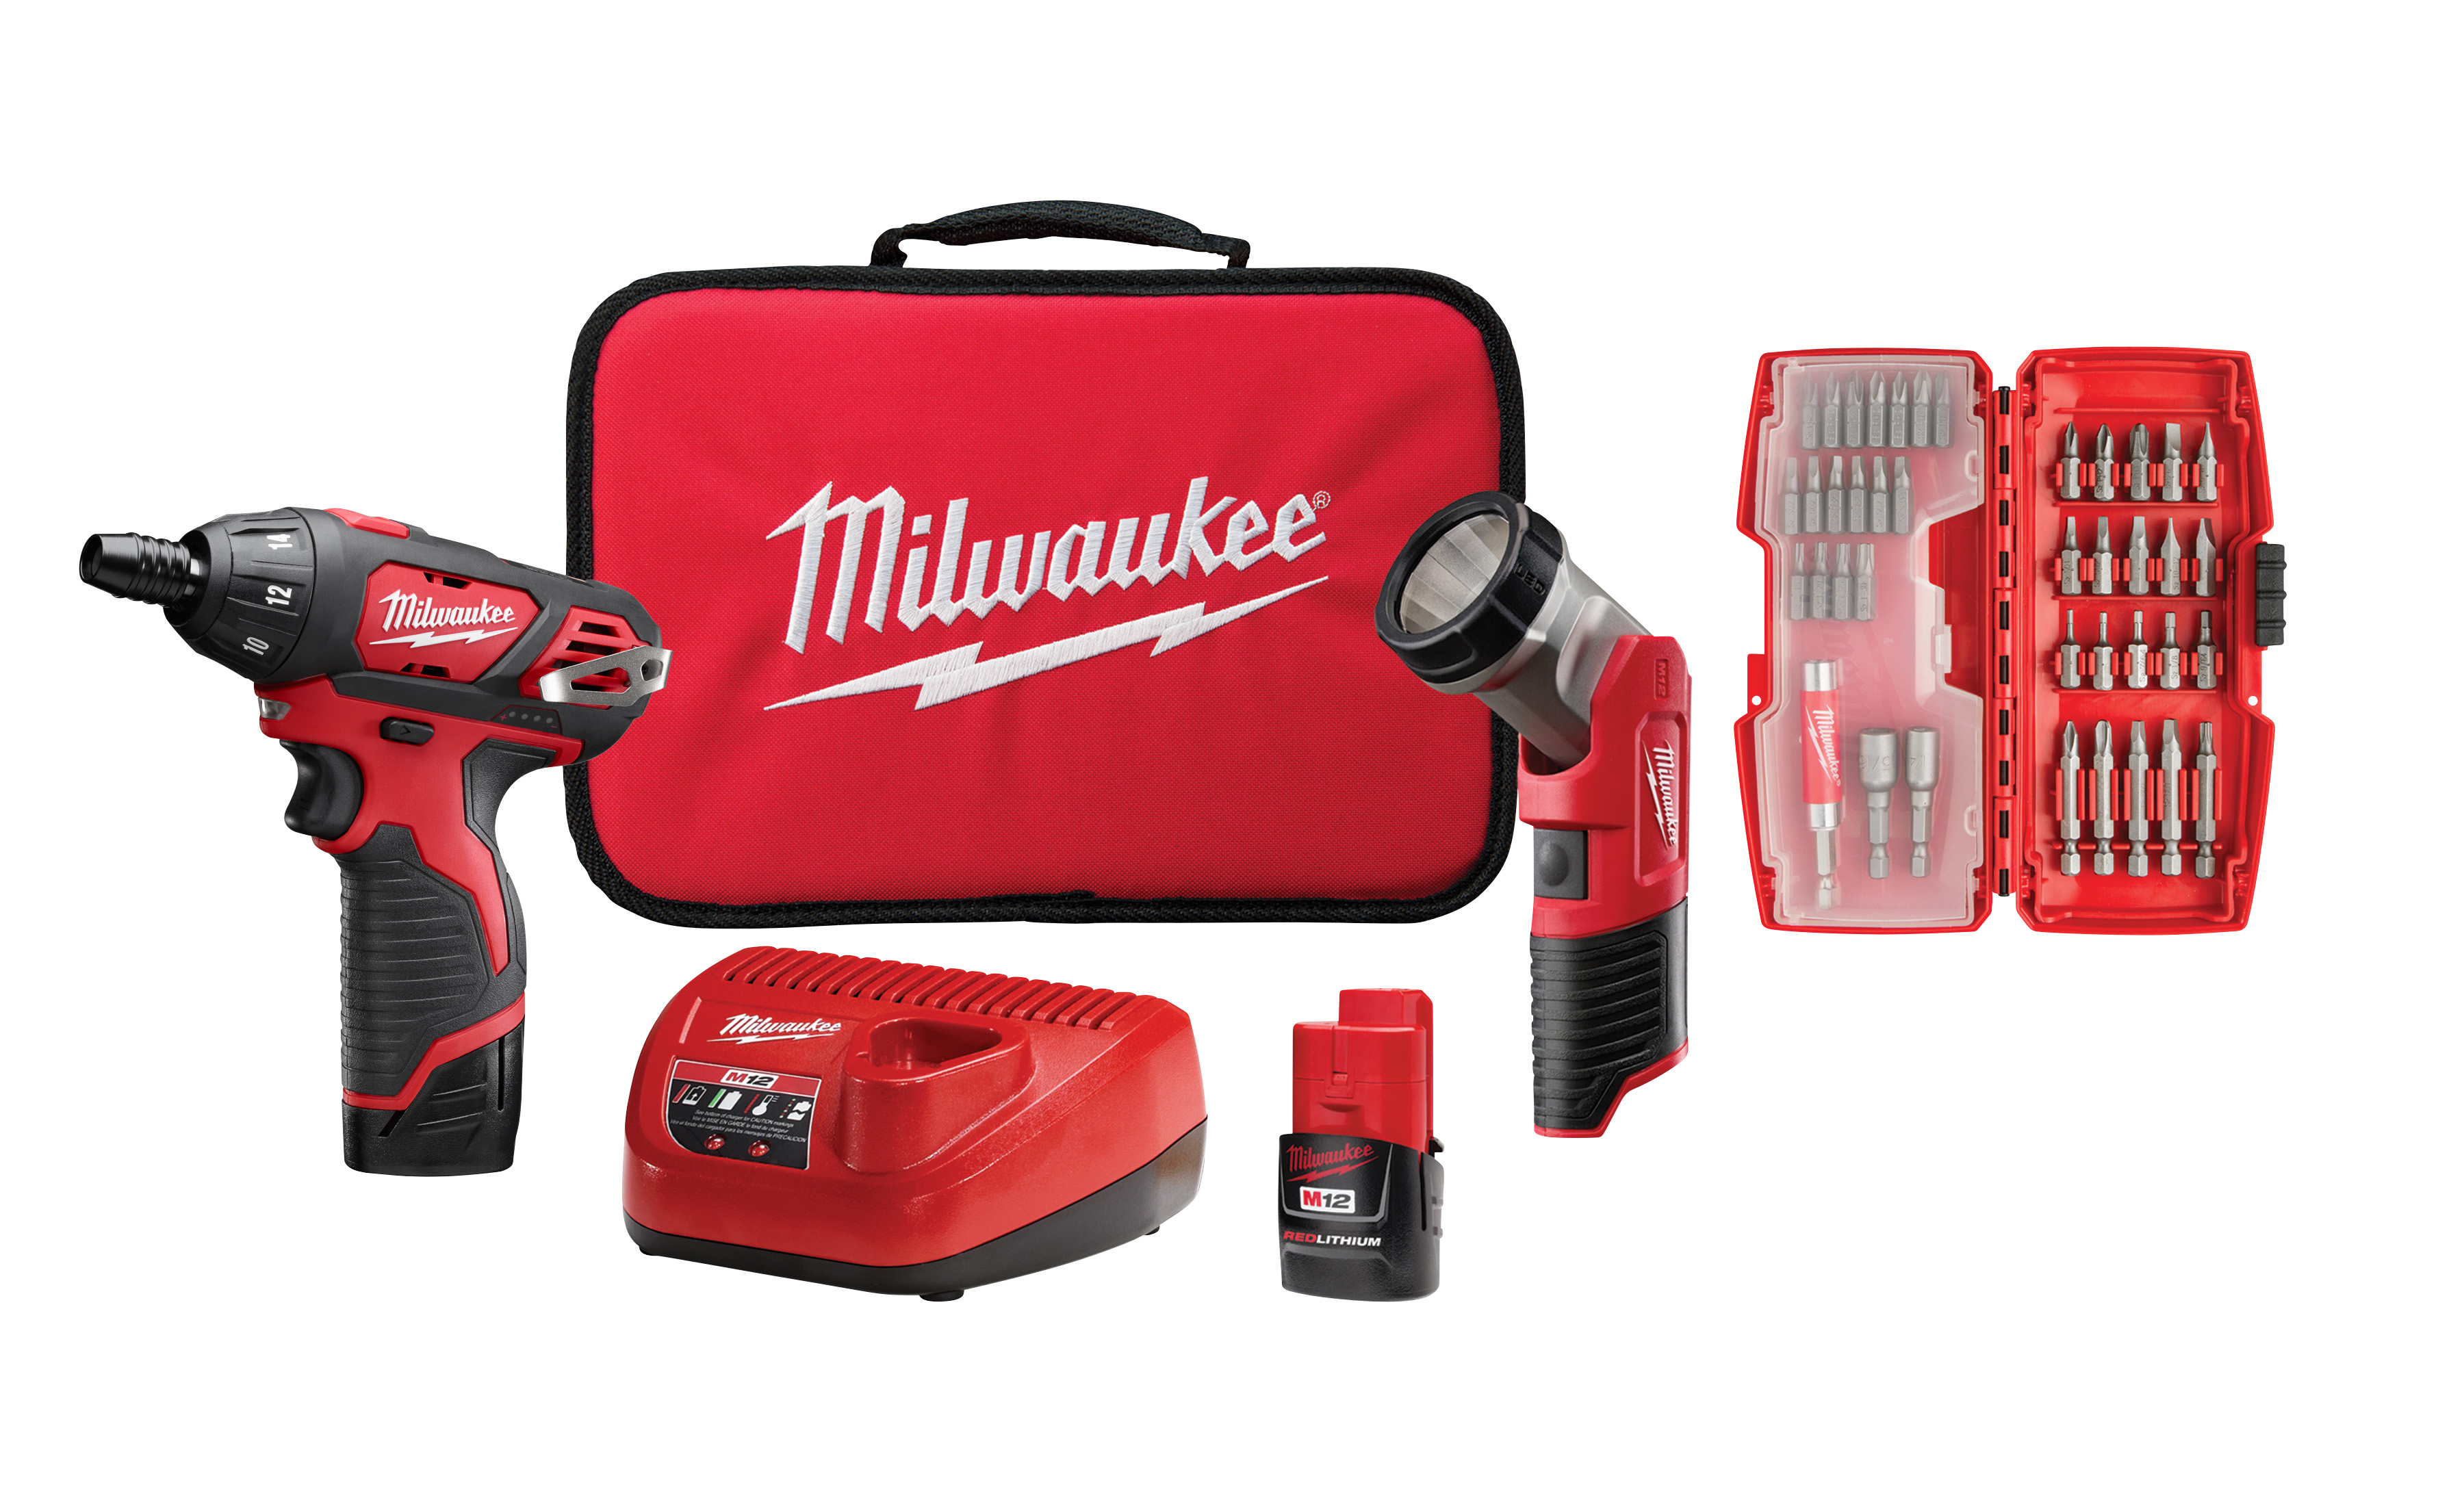 Milwaukee® M12™ 2462-20 High Performance Cordless Impact Driver, 1/4 in Hex/Straight Drive, 3300 bpm, 1000 in-lb Torque, 12 VAC, 6-1/2 in OAL